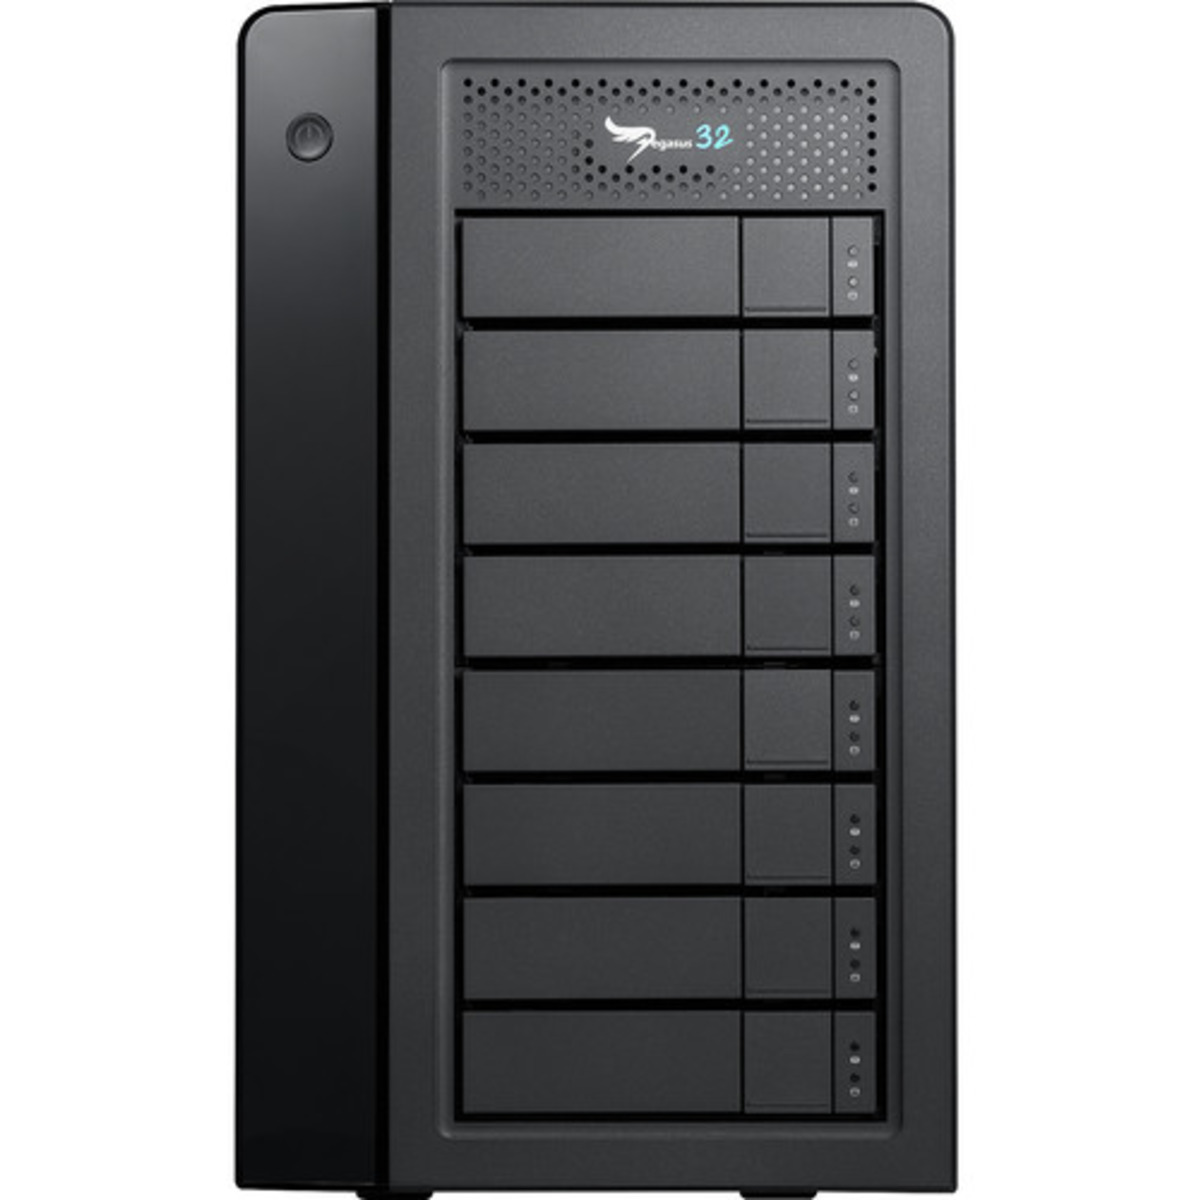 buy $5043 Promise Technology Pegasus32 R8 Thunderbolt 3 80tb Desktop DAS - Direct Attached Storage Device 8x10000gb Seagate EXOS X16 ST10000NM001G 3.5 7200rpm SATA 6Gb/s HDD ENTERPRISE Class Drives Installed - Burn-In Tested - nas headquarters buy network attached storage server device das new raid-5 free shipping usa holiday new year clearance sale Pegasus32 R8 Thunderbolt 3